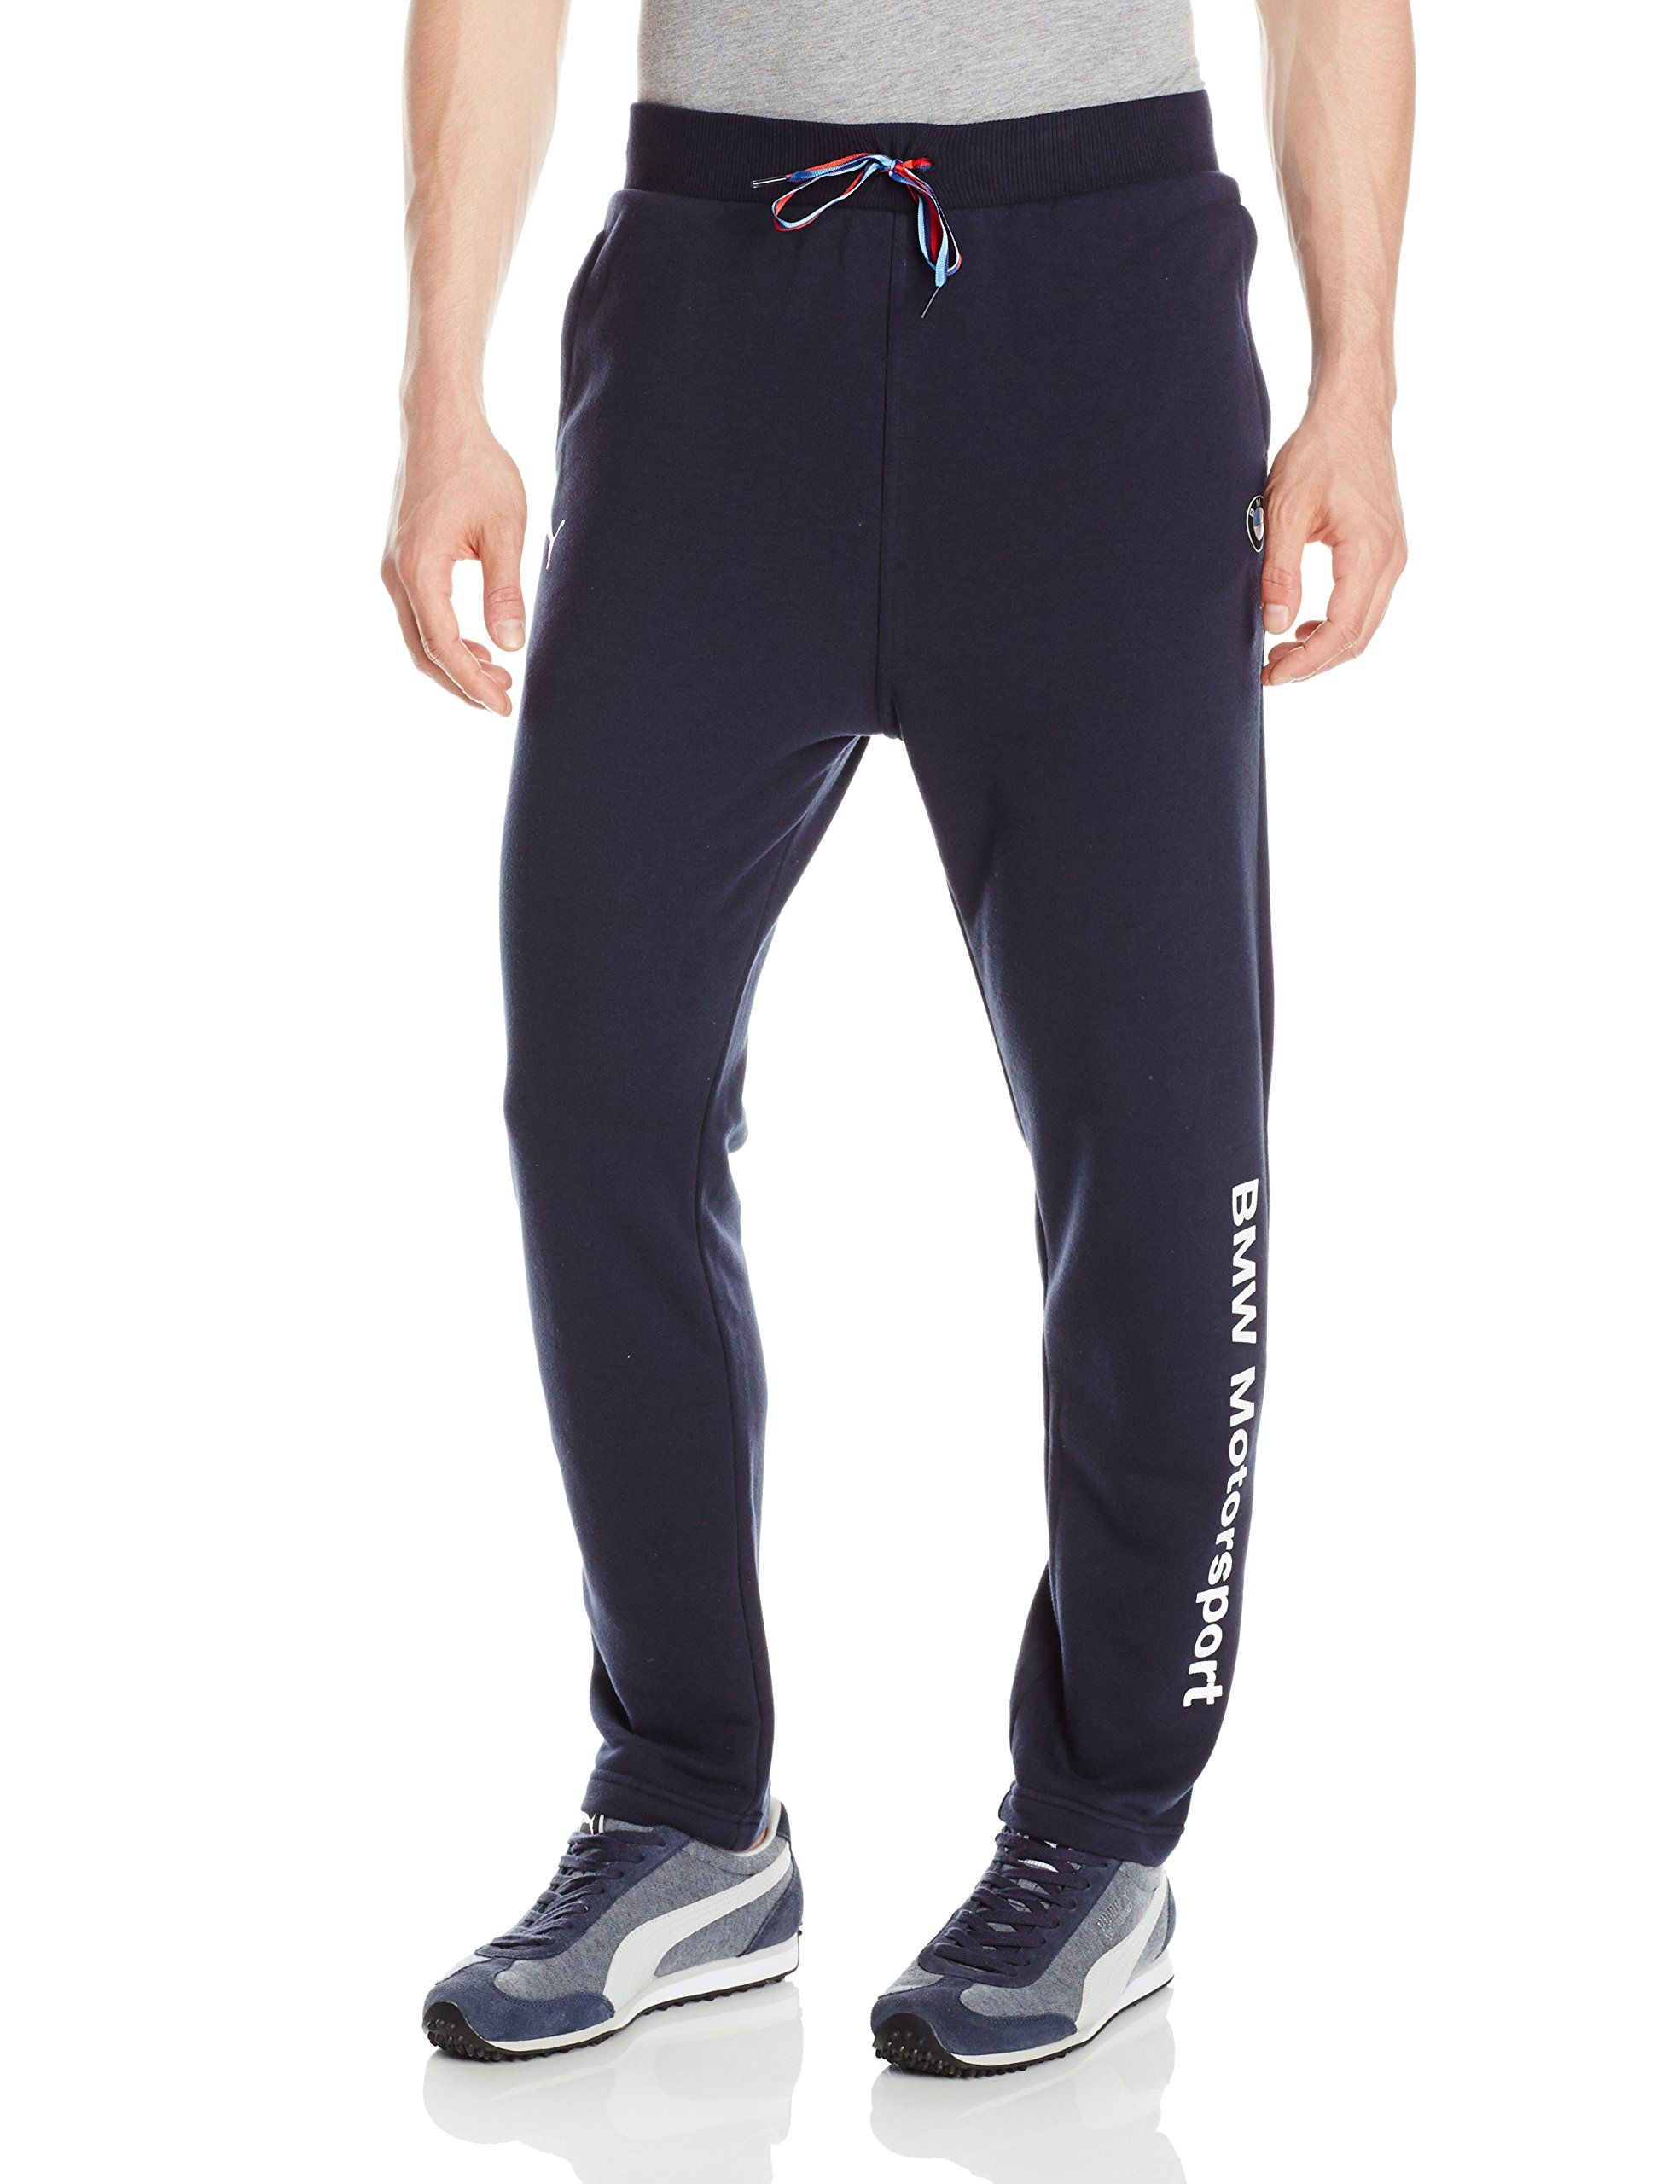 fdf3caa4 PUMA Men's Bmw MSP Sweat Pants at Amazon Men's Clothing store: | My ...